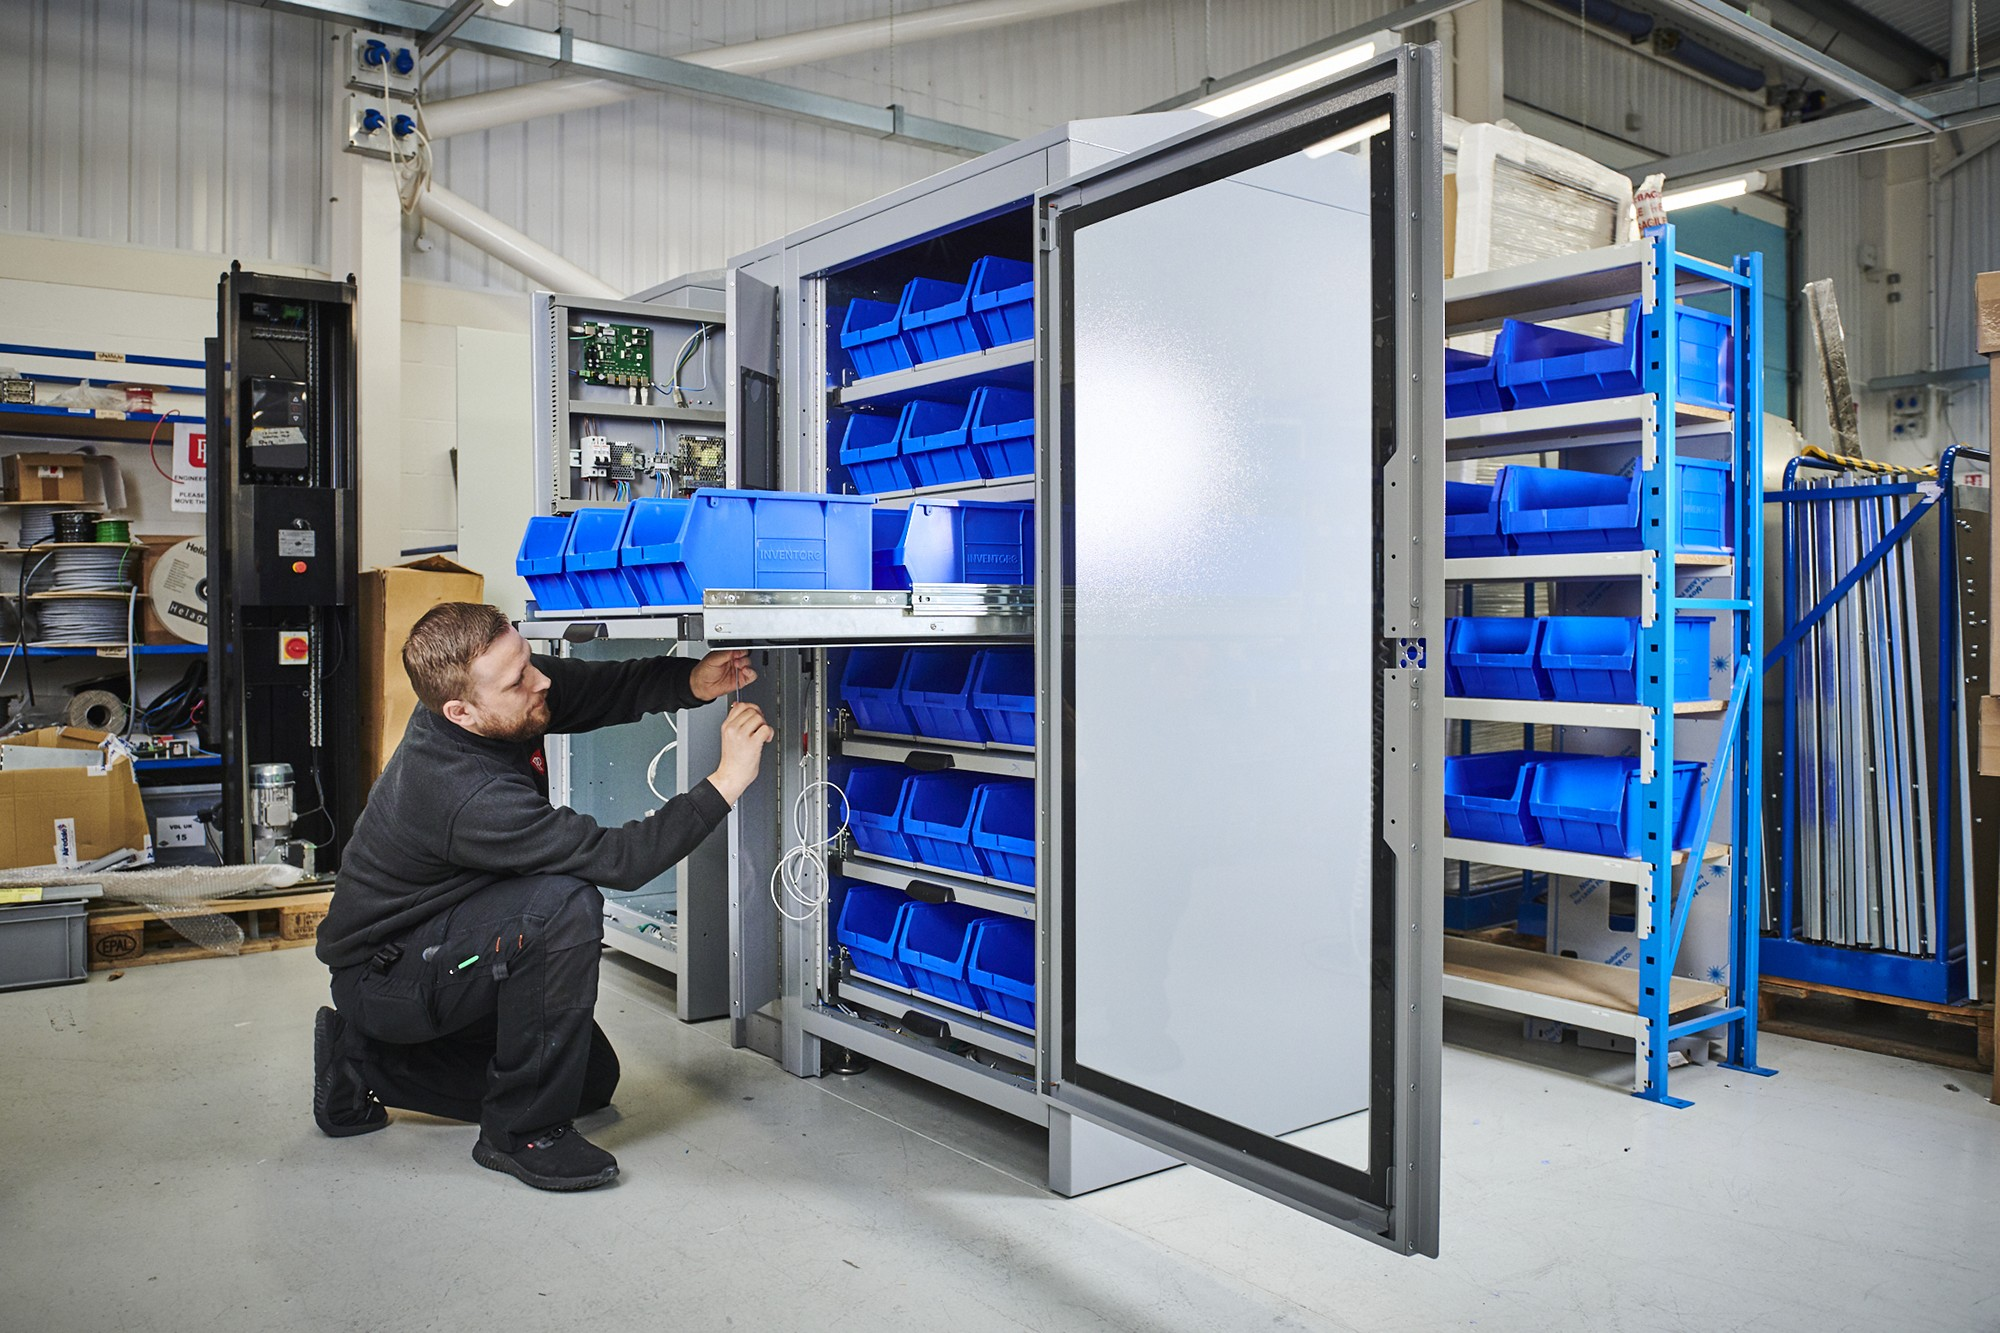 Inventor-e taps into the power of MAN to target £3m inventory management opportunity » PPAutomation Tony Profiles Aug2021 0186 » PP Control & Automation